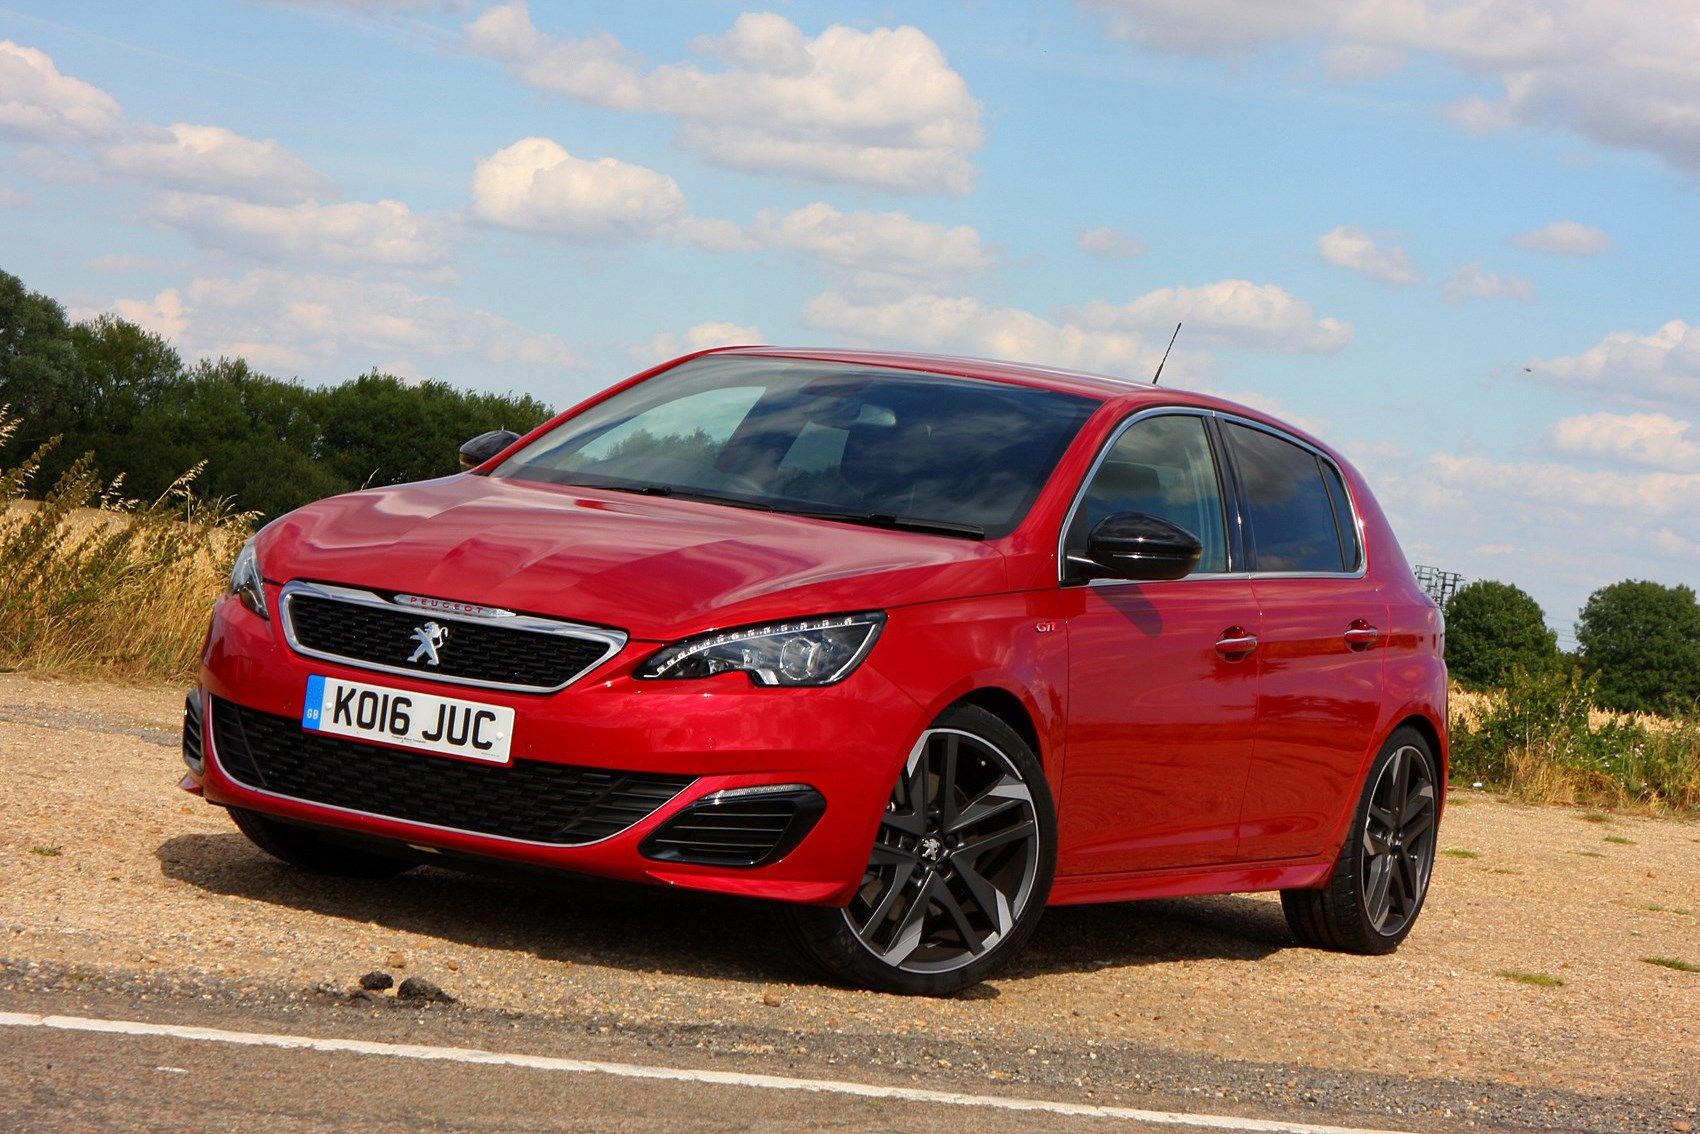 Peugeot 308 GTI 270 - cheap fast cars